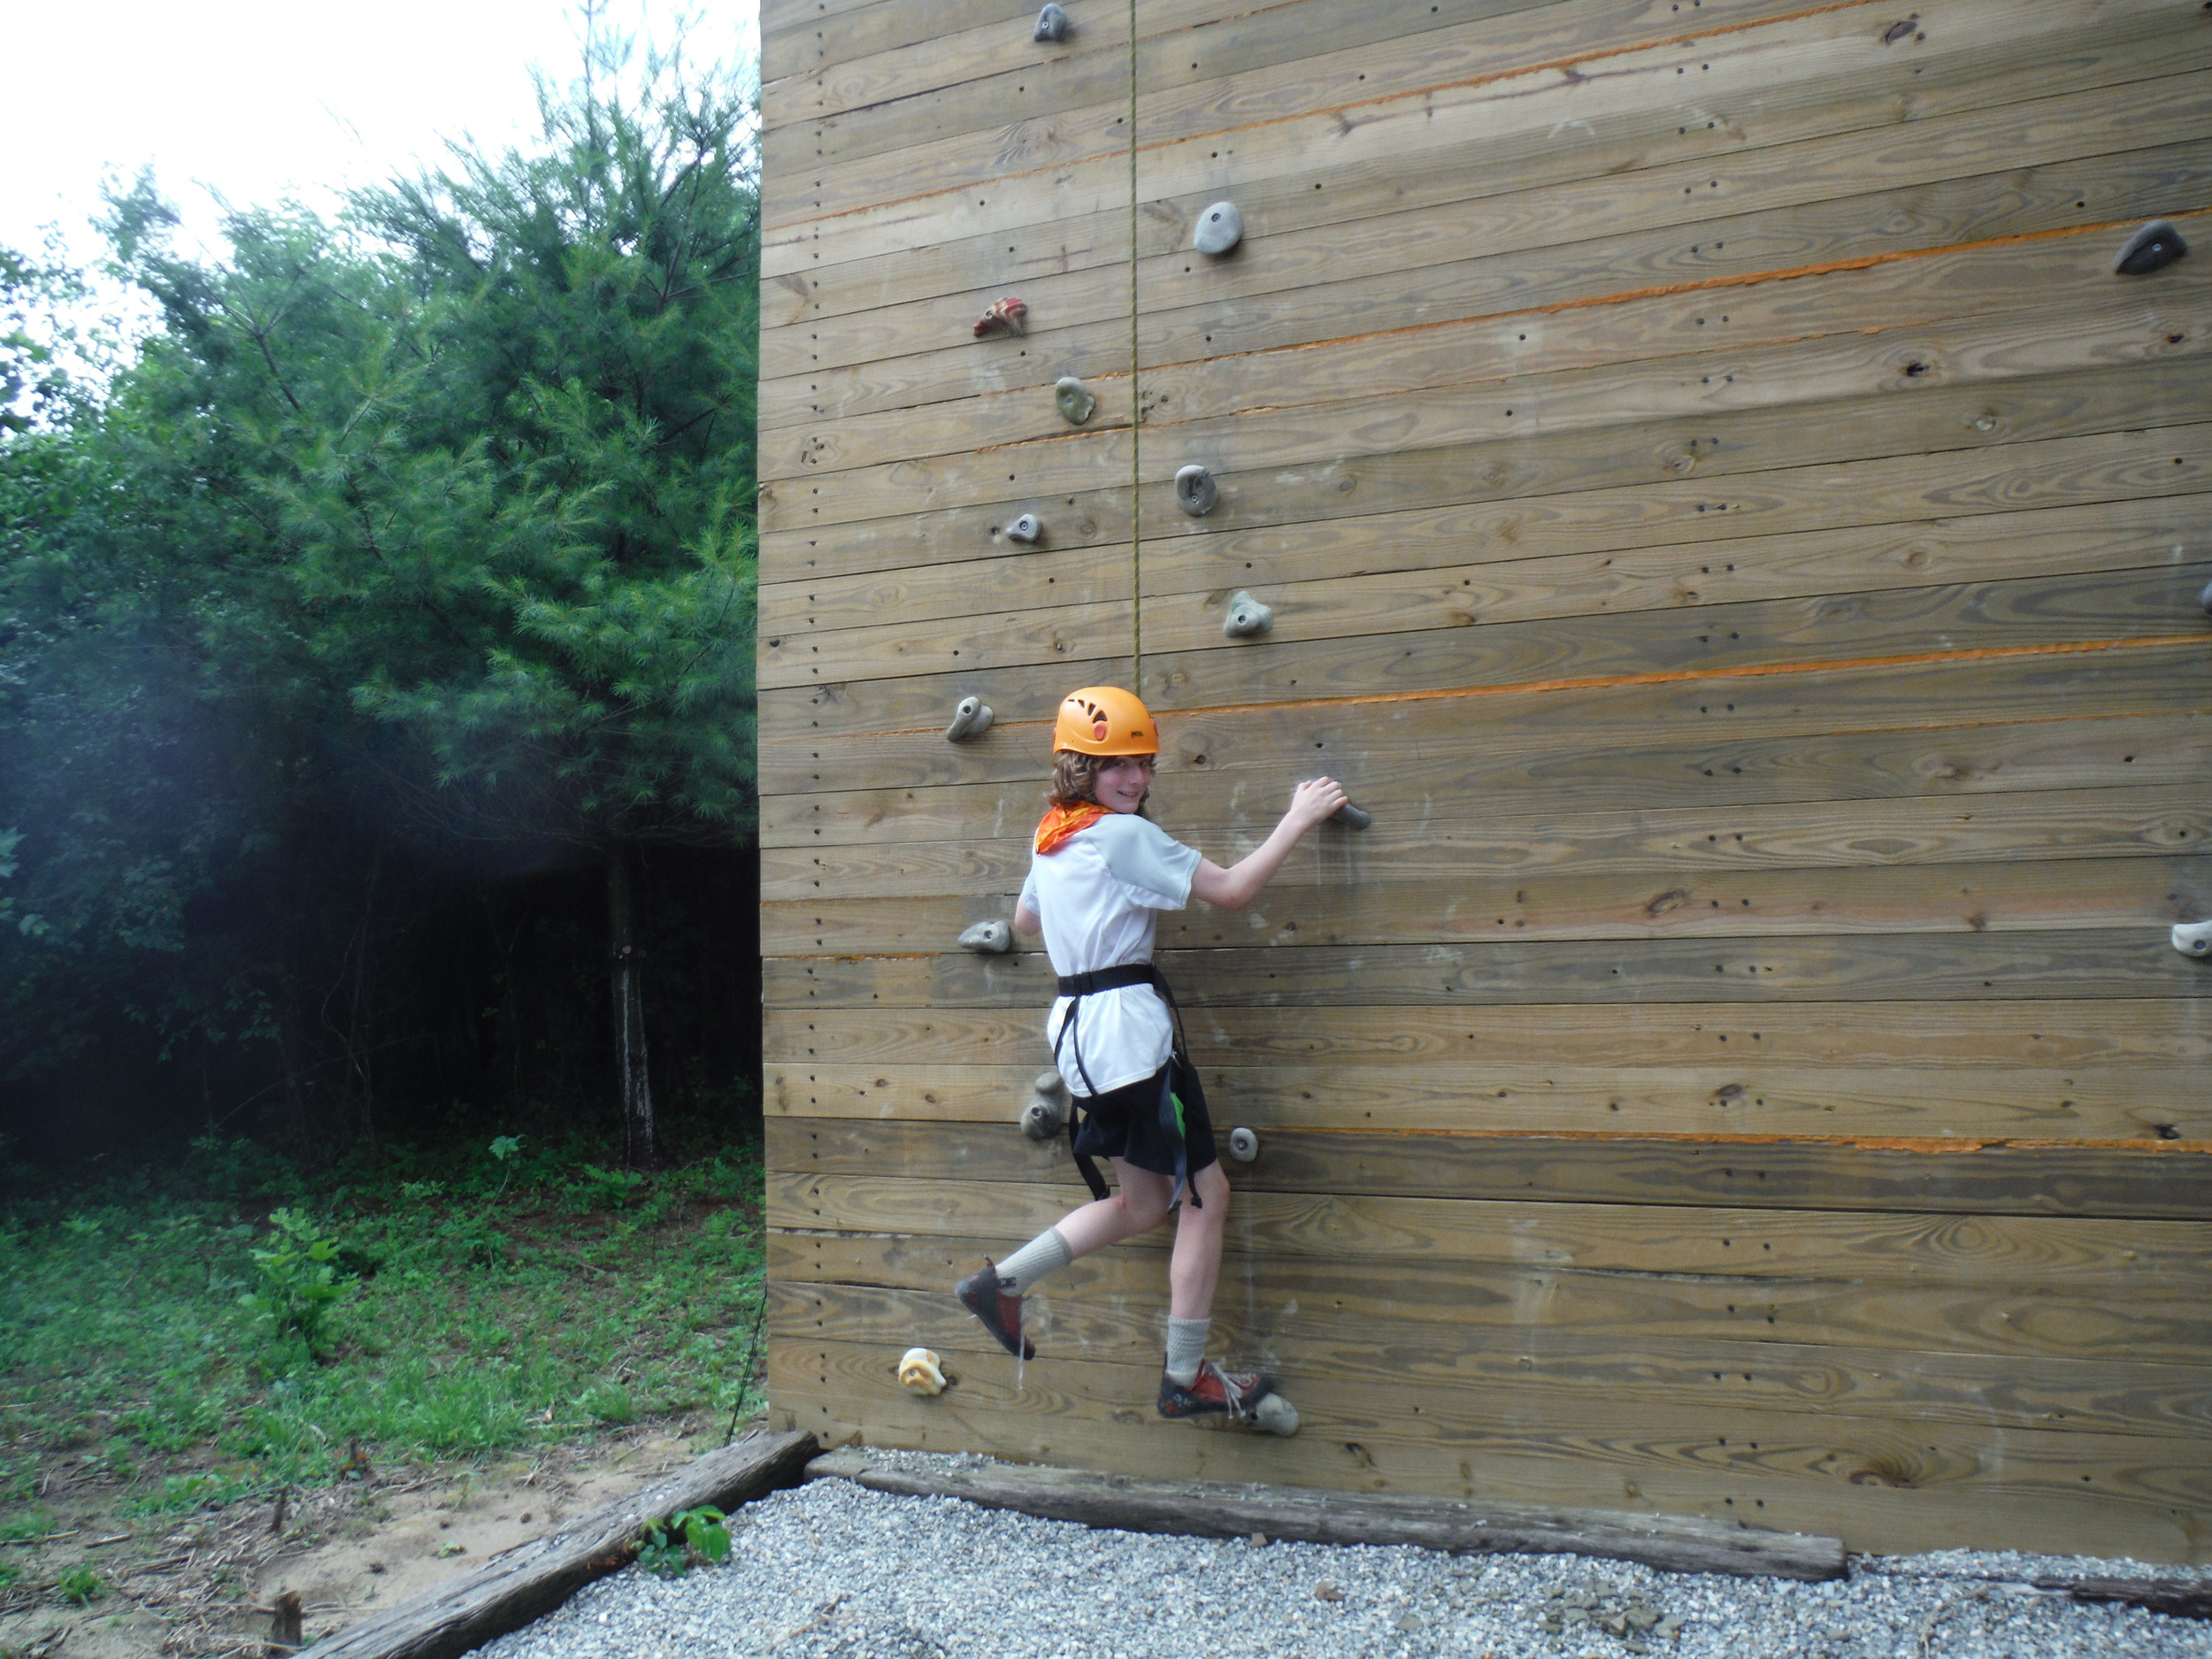 Climbing Wall  $20 per person  Climb to your heart's content!